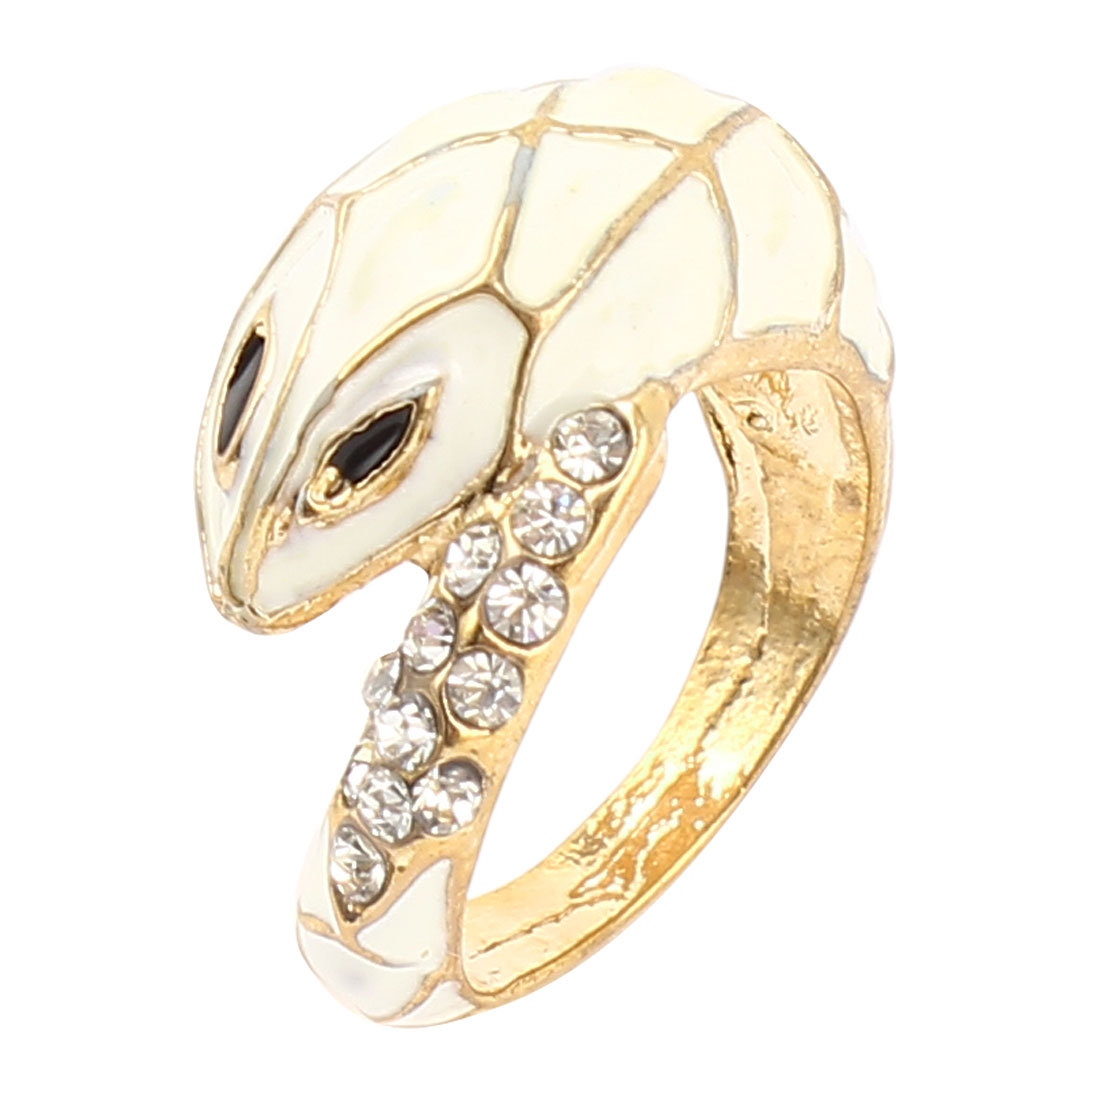 US 7 White Brass Tone Metal Snake Shape Rhinestone Detailing Finger Ring for Lady